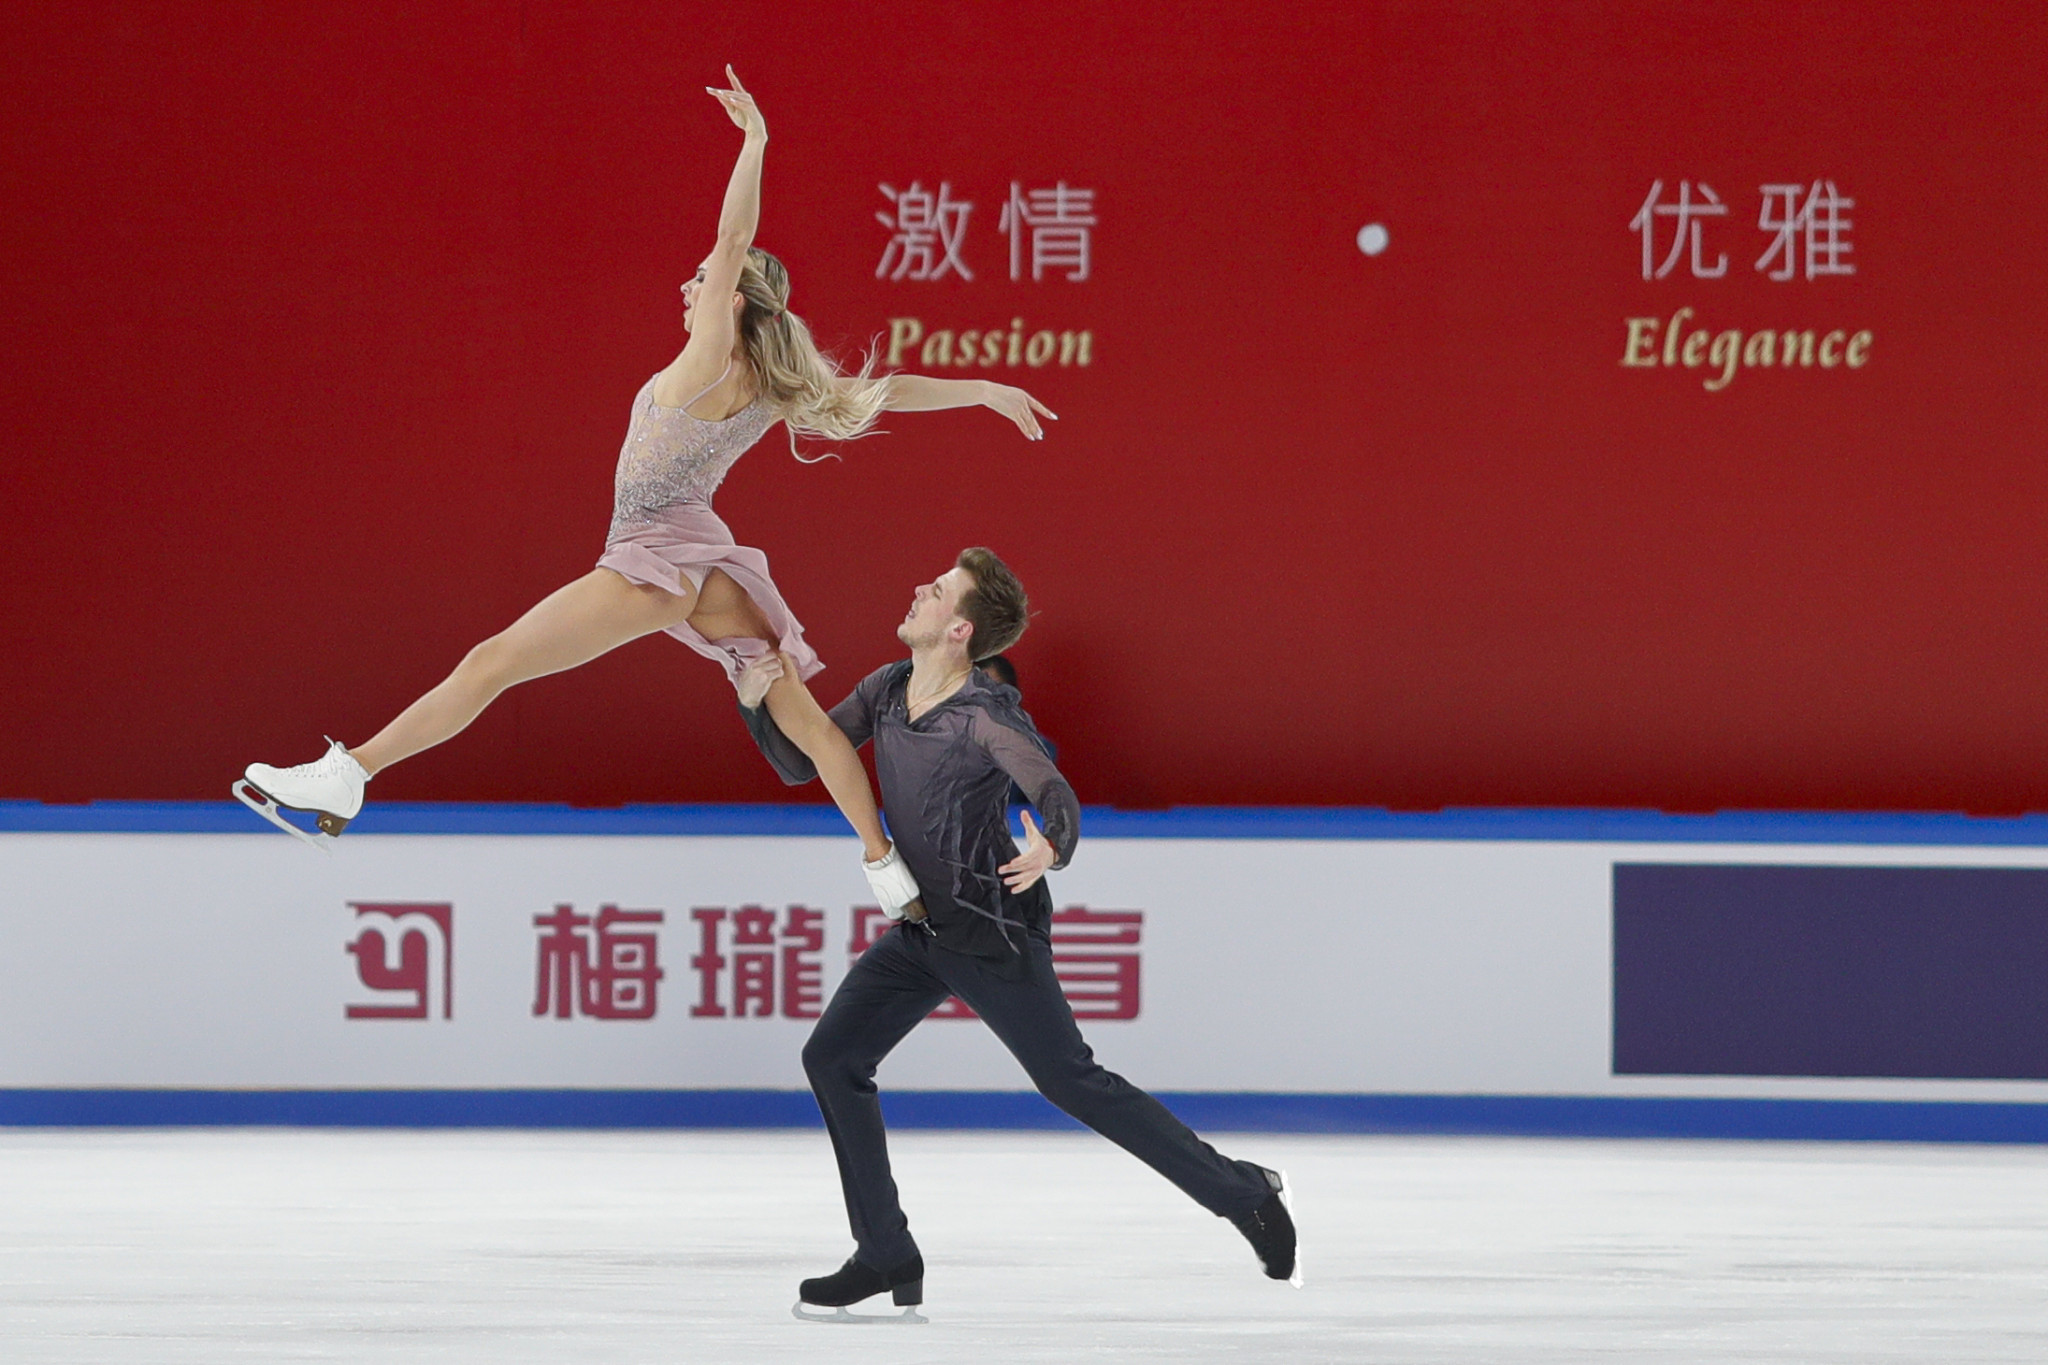 ISU Grand Prix of Figure Skating season poised to change to domestic events